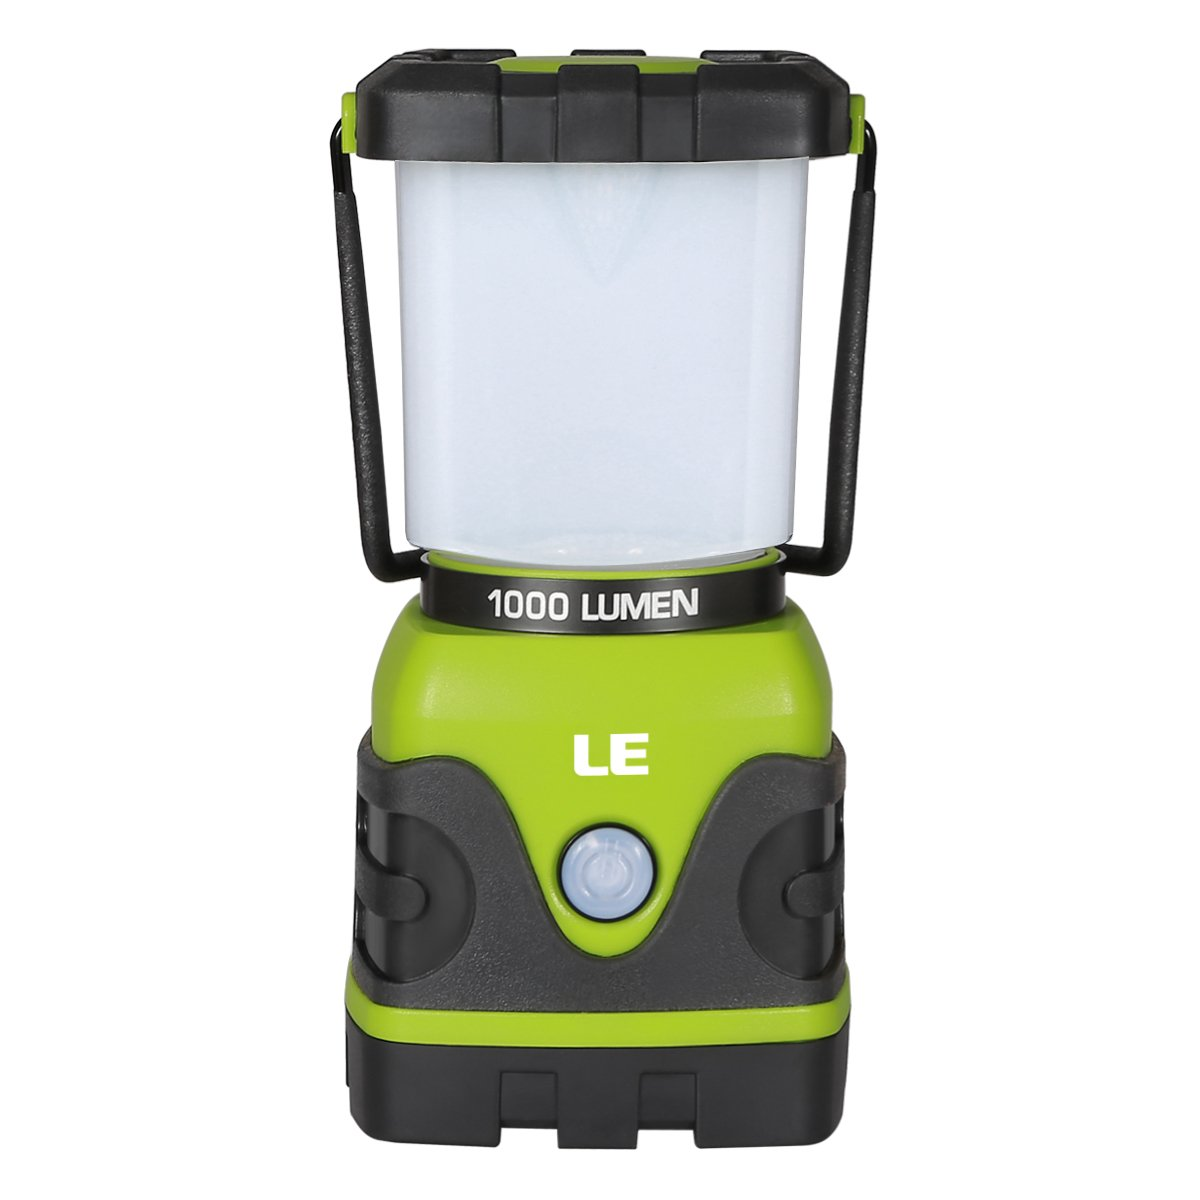 Lights & Lighting Able Usb Charging Mosquito Killer Lamp Dual-use Socket Led Nightlight Bulb Outdoor Portable Camping Light 2018 Strong Resistance To Heat And Hard Wearing